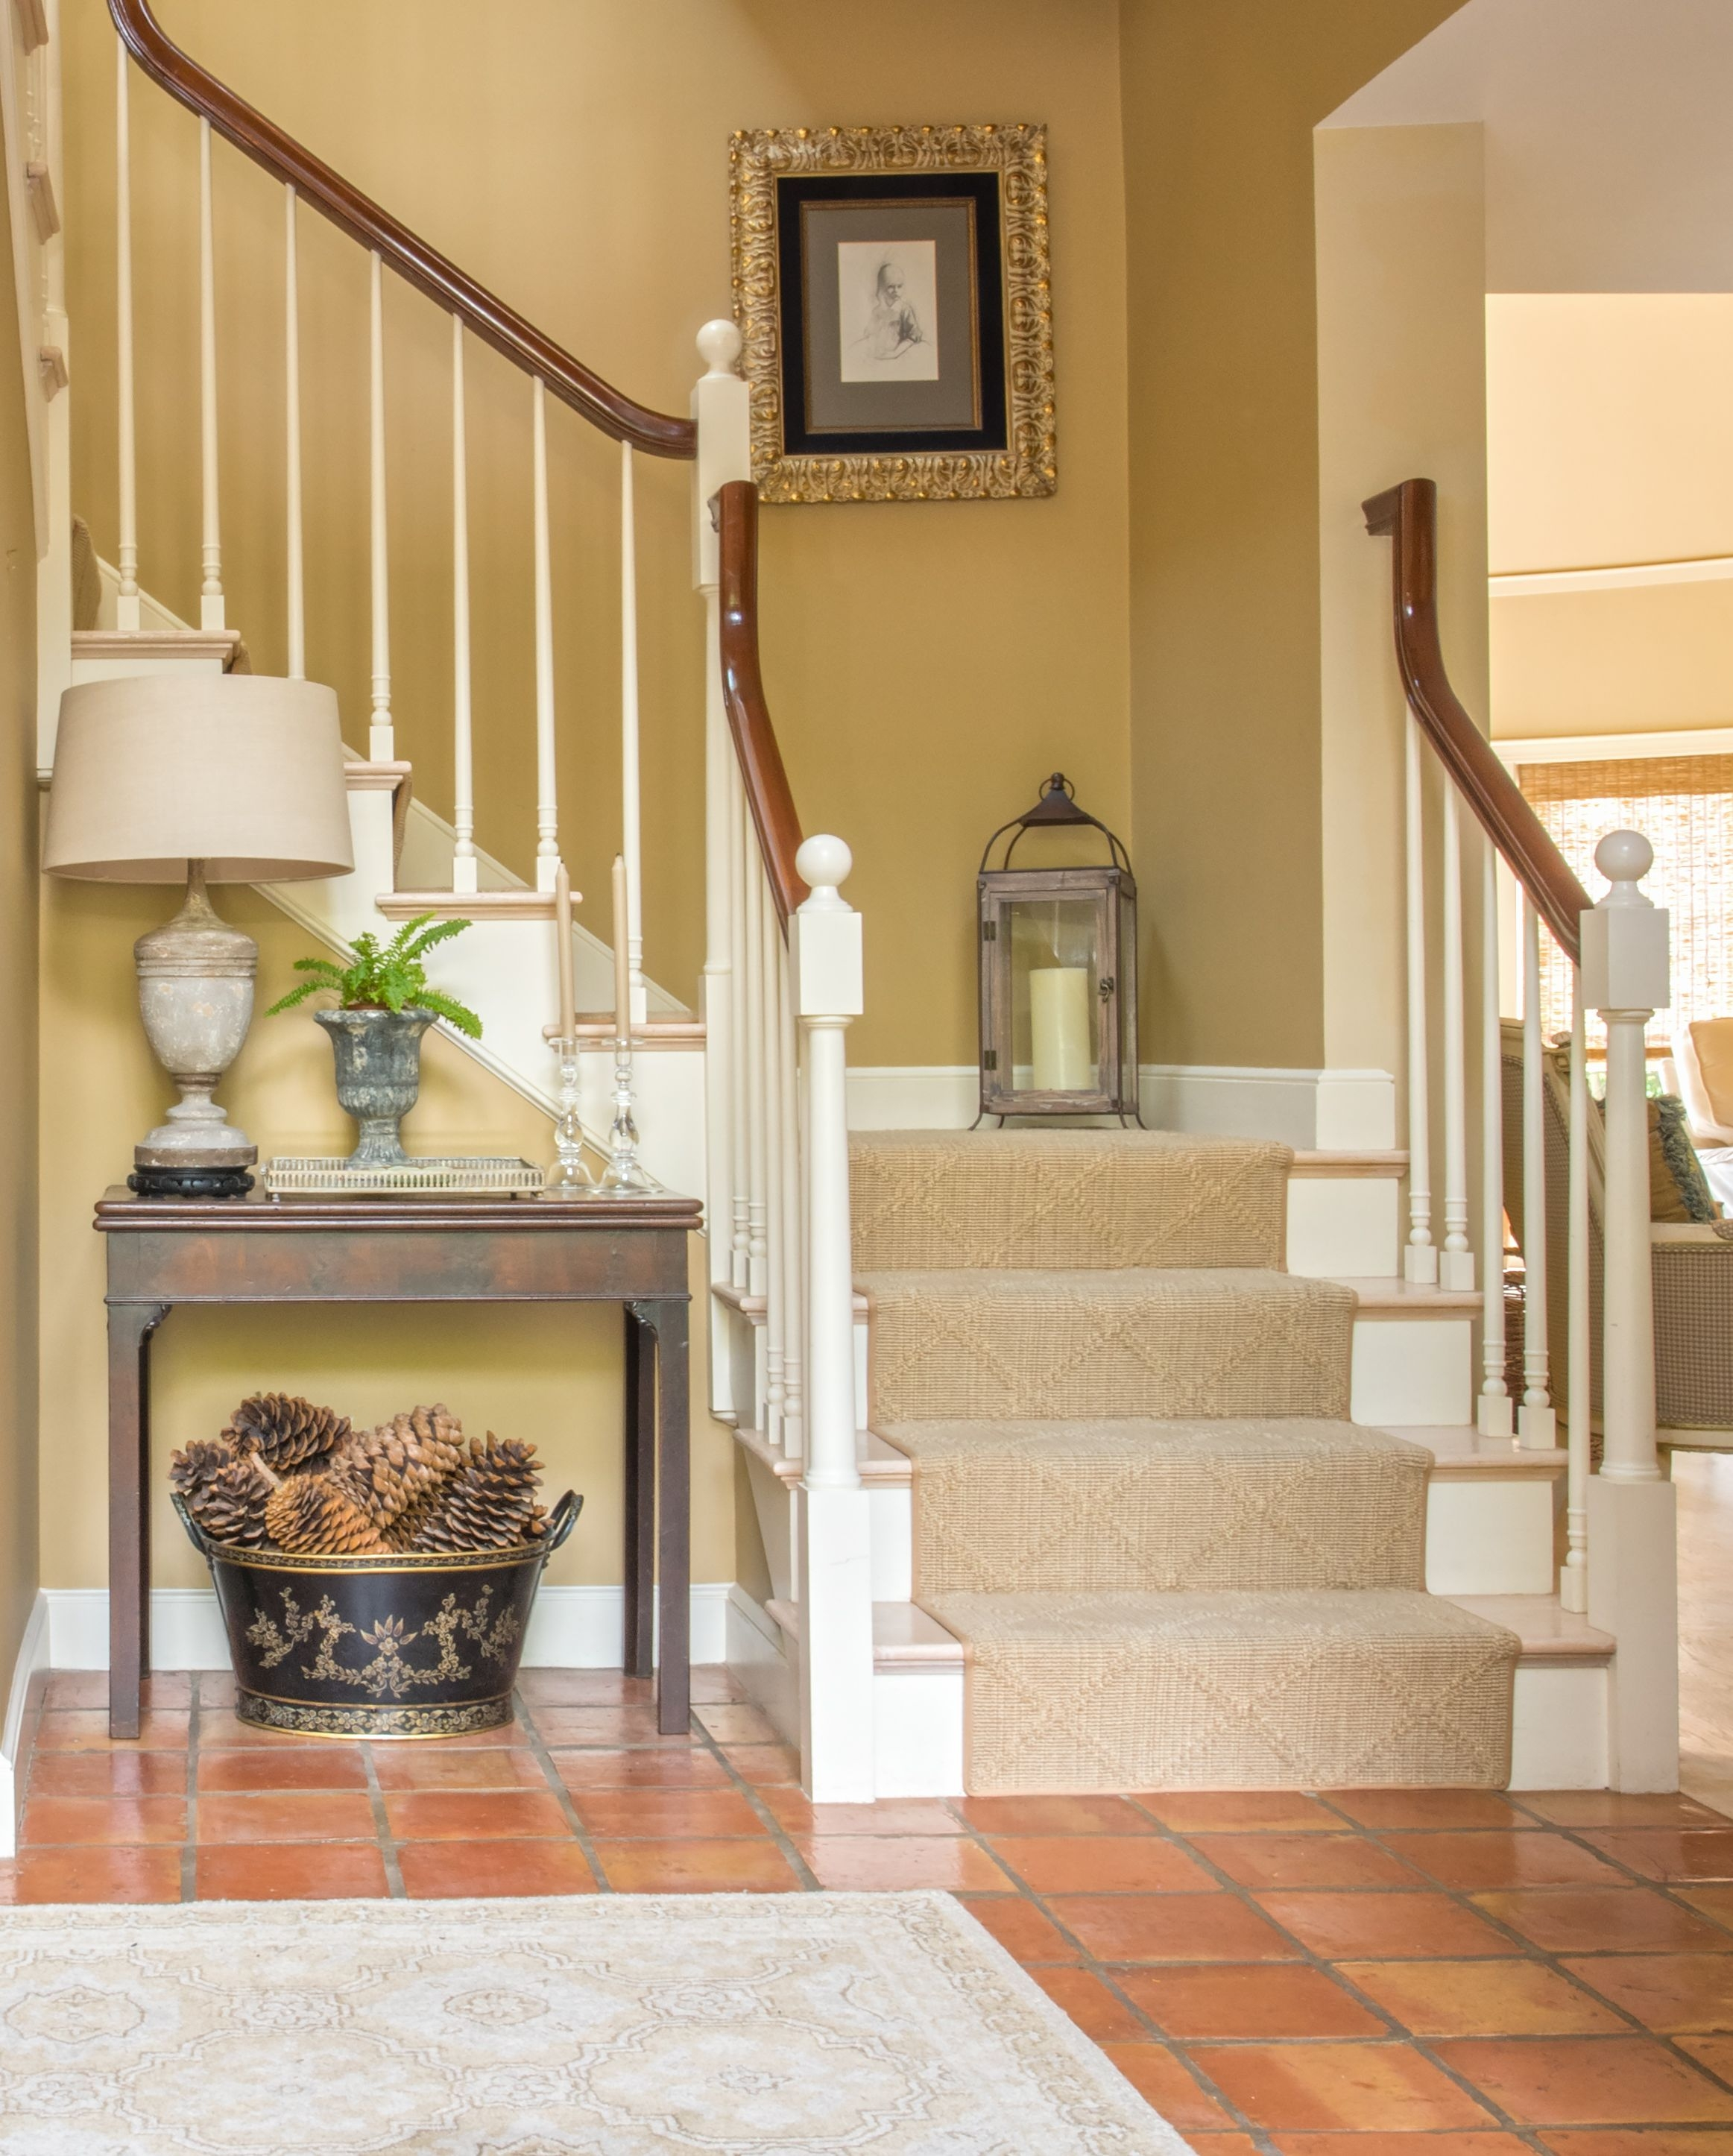 27 Stylish Staircase Decorating Ideas How To Decorate Stairways | House Steps Design Inside | Gallery | Front | In House Construction | Stair Decoration | Grill